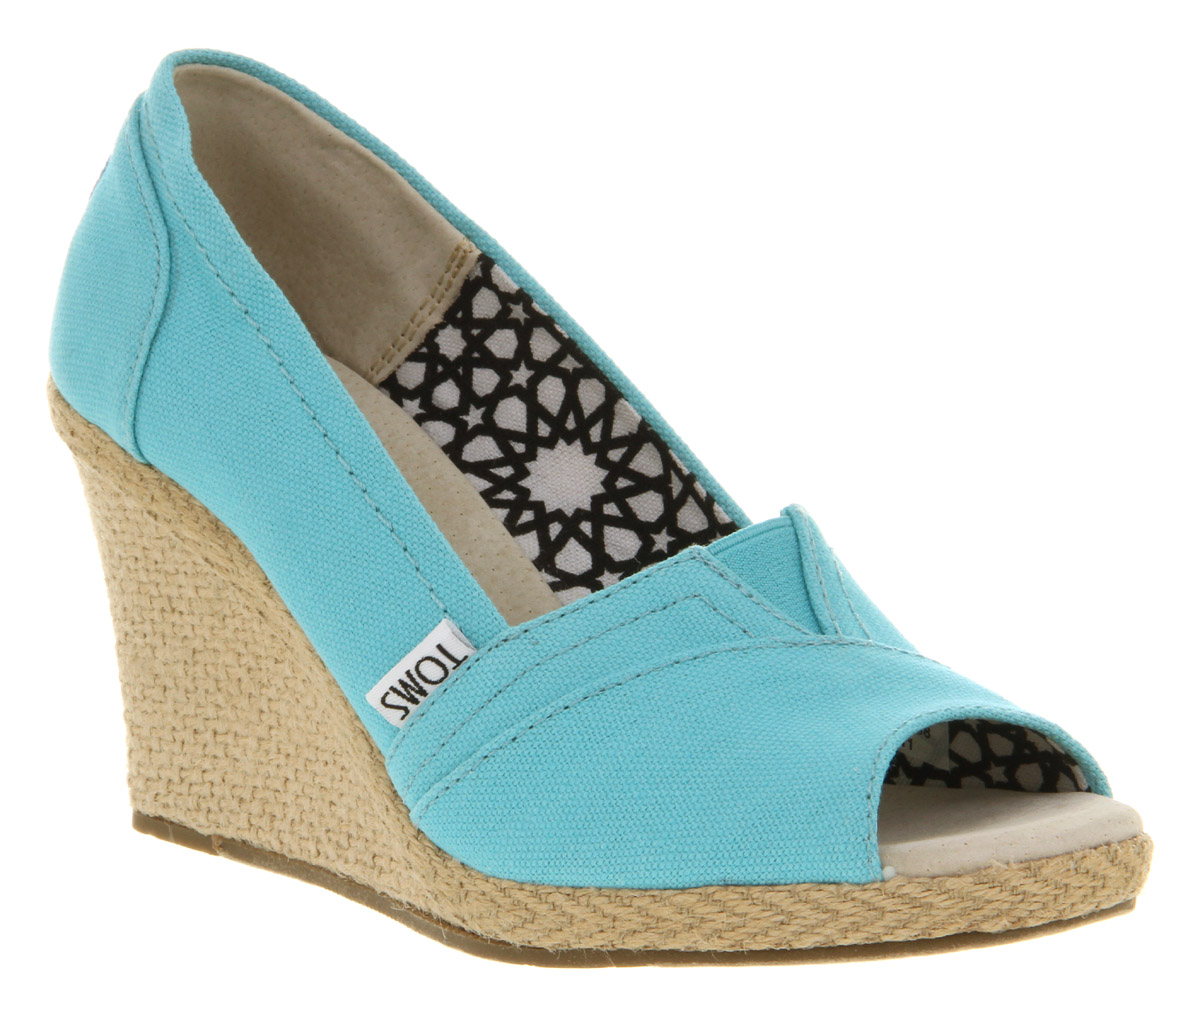 500f6da178d Lyst - TOMS Wedge Peeptoe Aqua Canvas in Blue